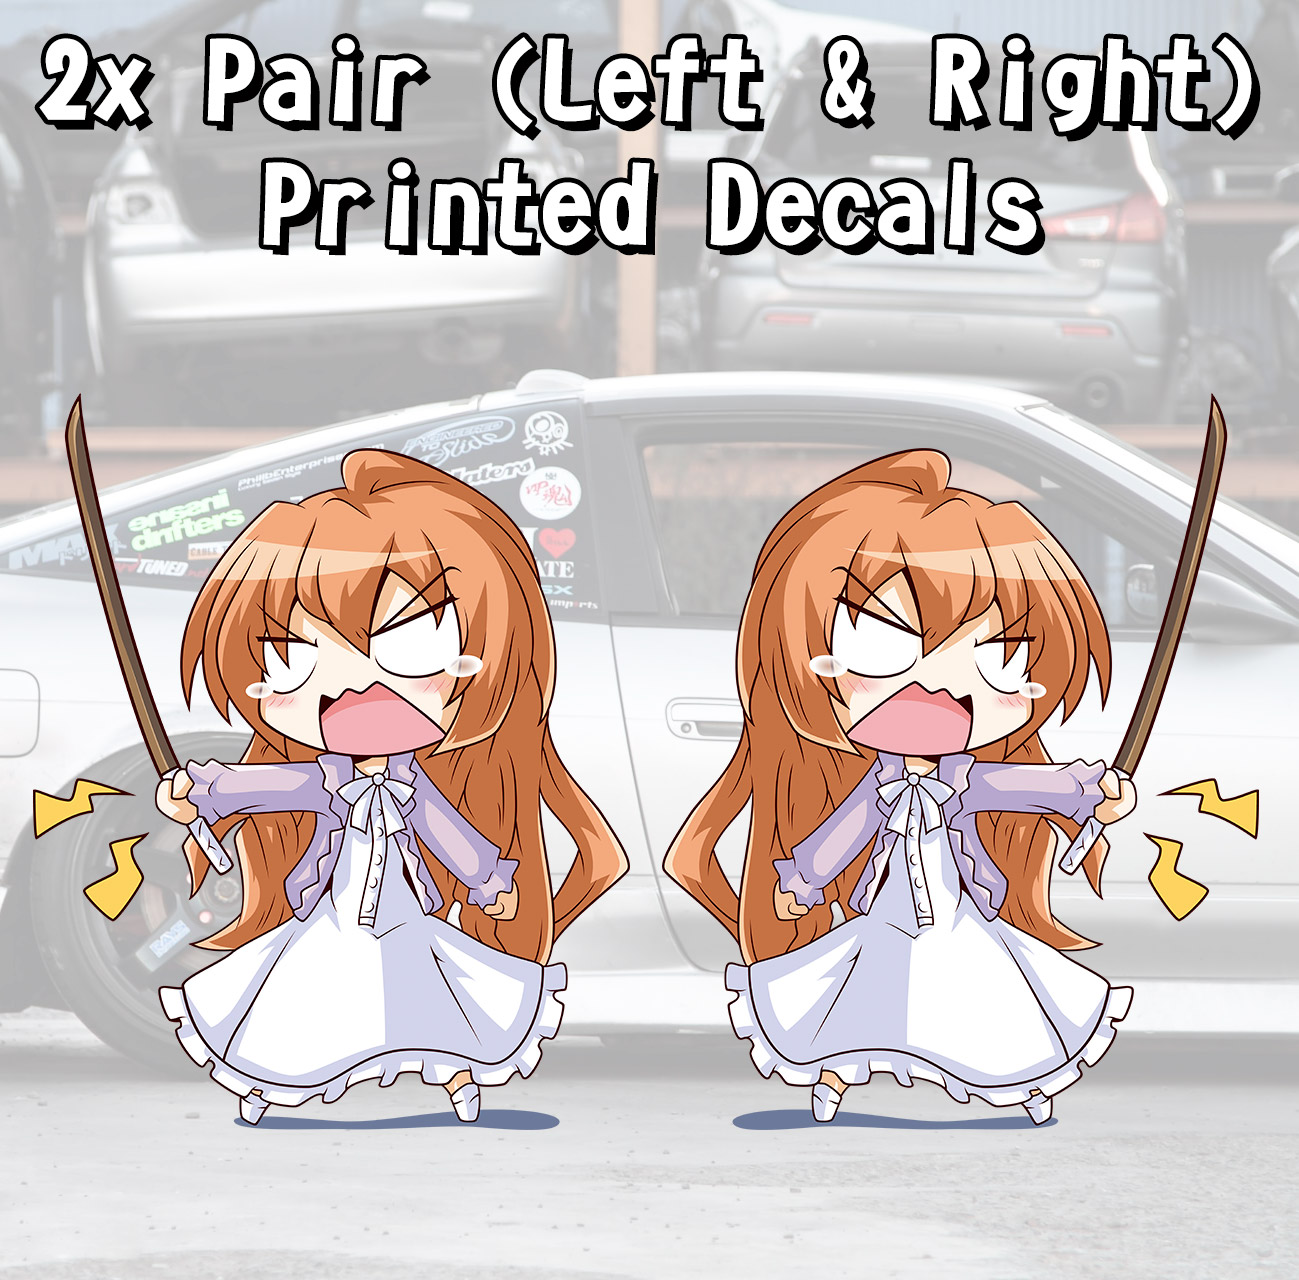 2x Pair Side Taiga Aisaka Palmtop Tiger Toradora Anime Manga Hentai Girls Boobs Sexy Printed Car Vinyl Sticker Decal